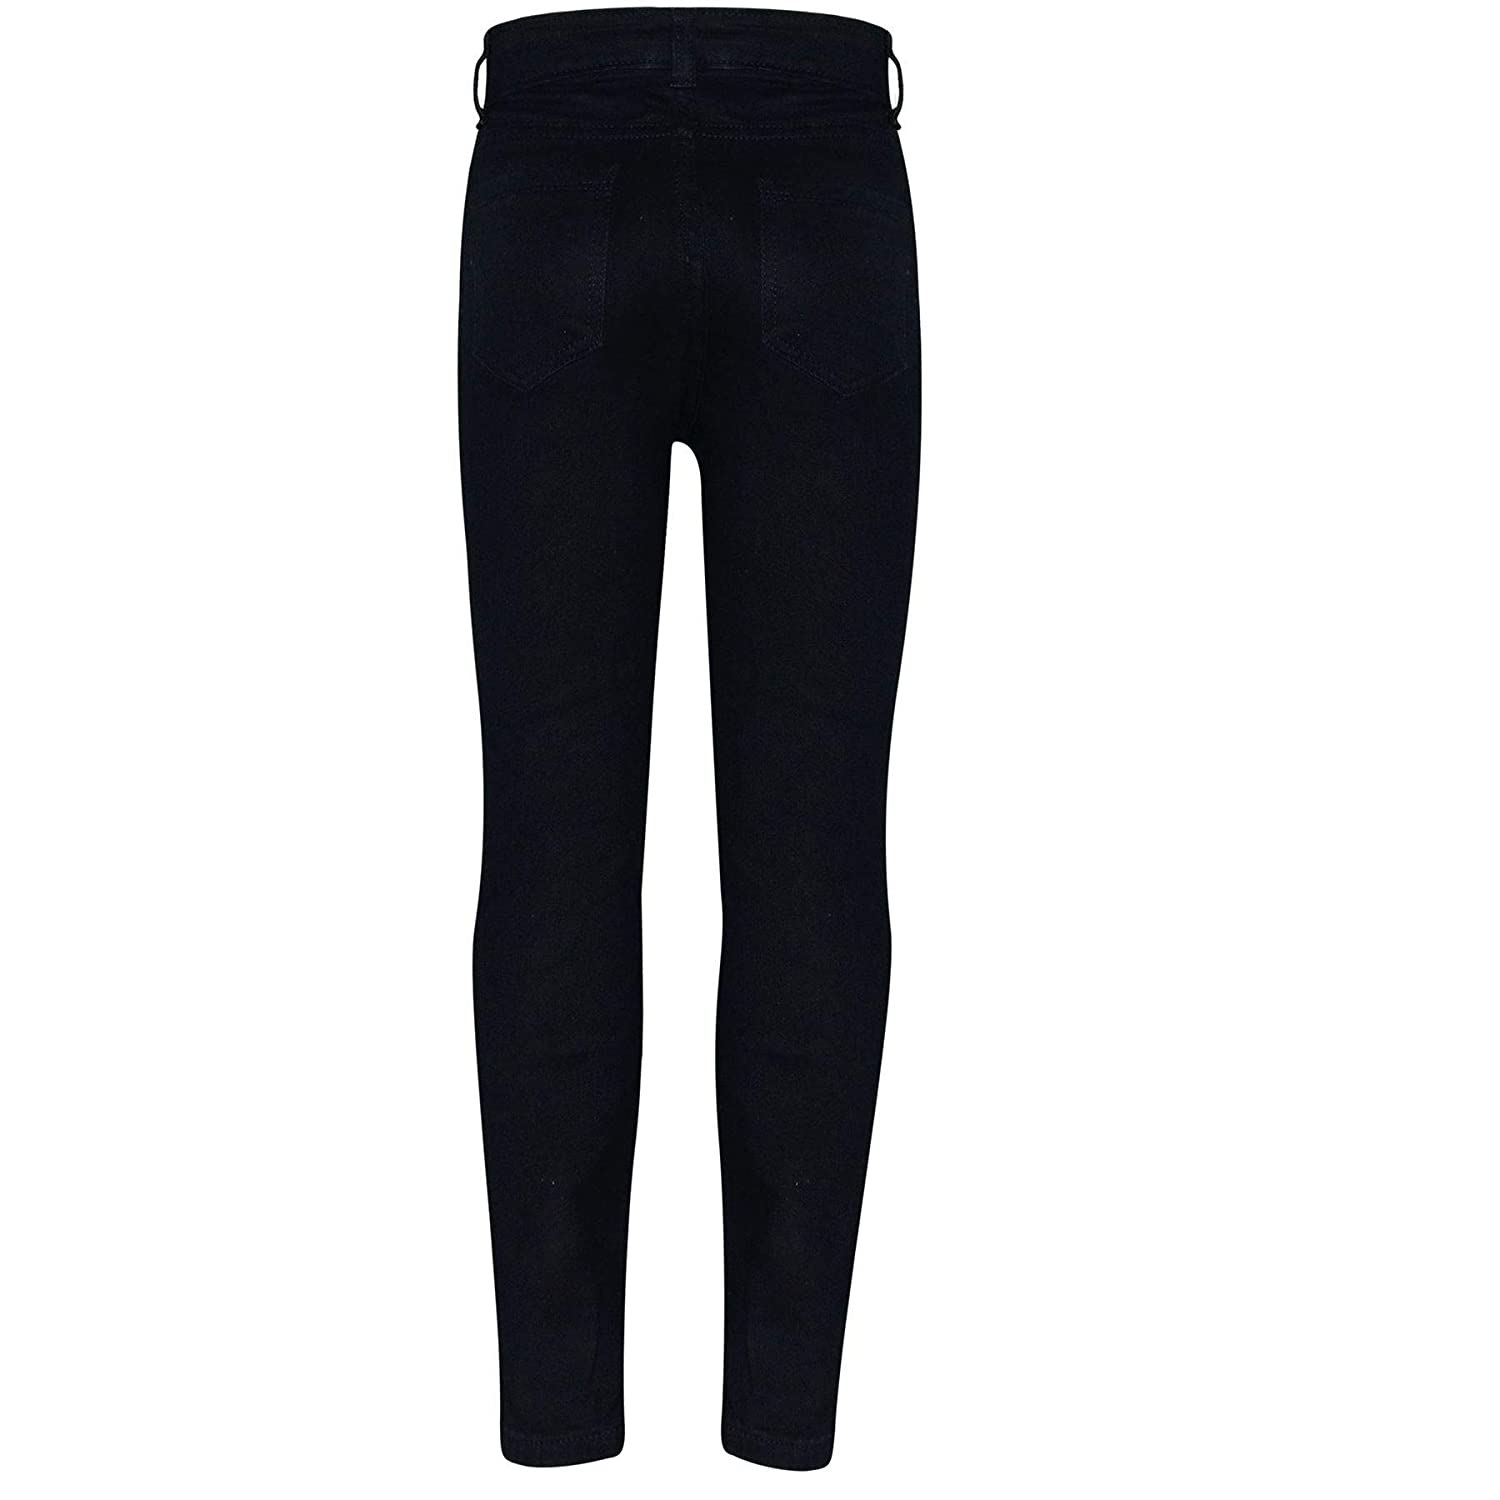 Kids Girls Skinny Jeans Denim Ripped Fashion Stretchy Jet Black Pants Jeggings